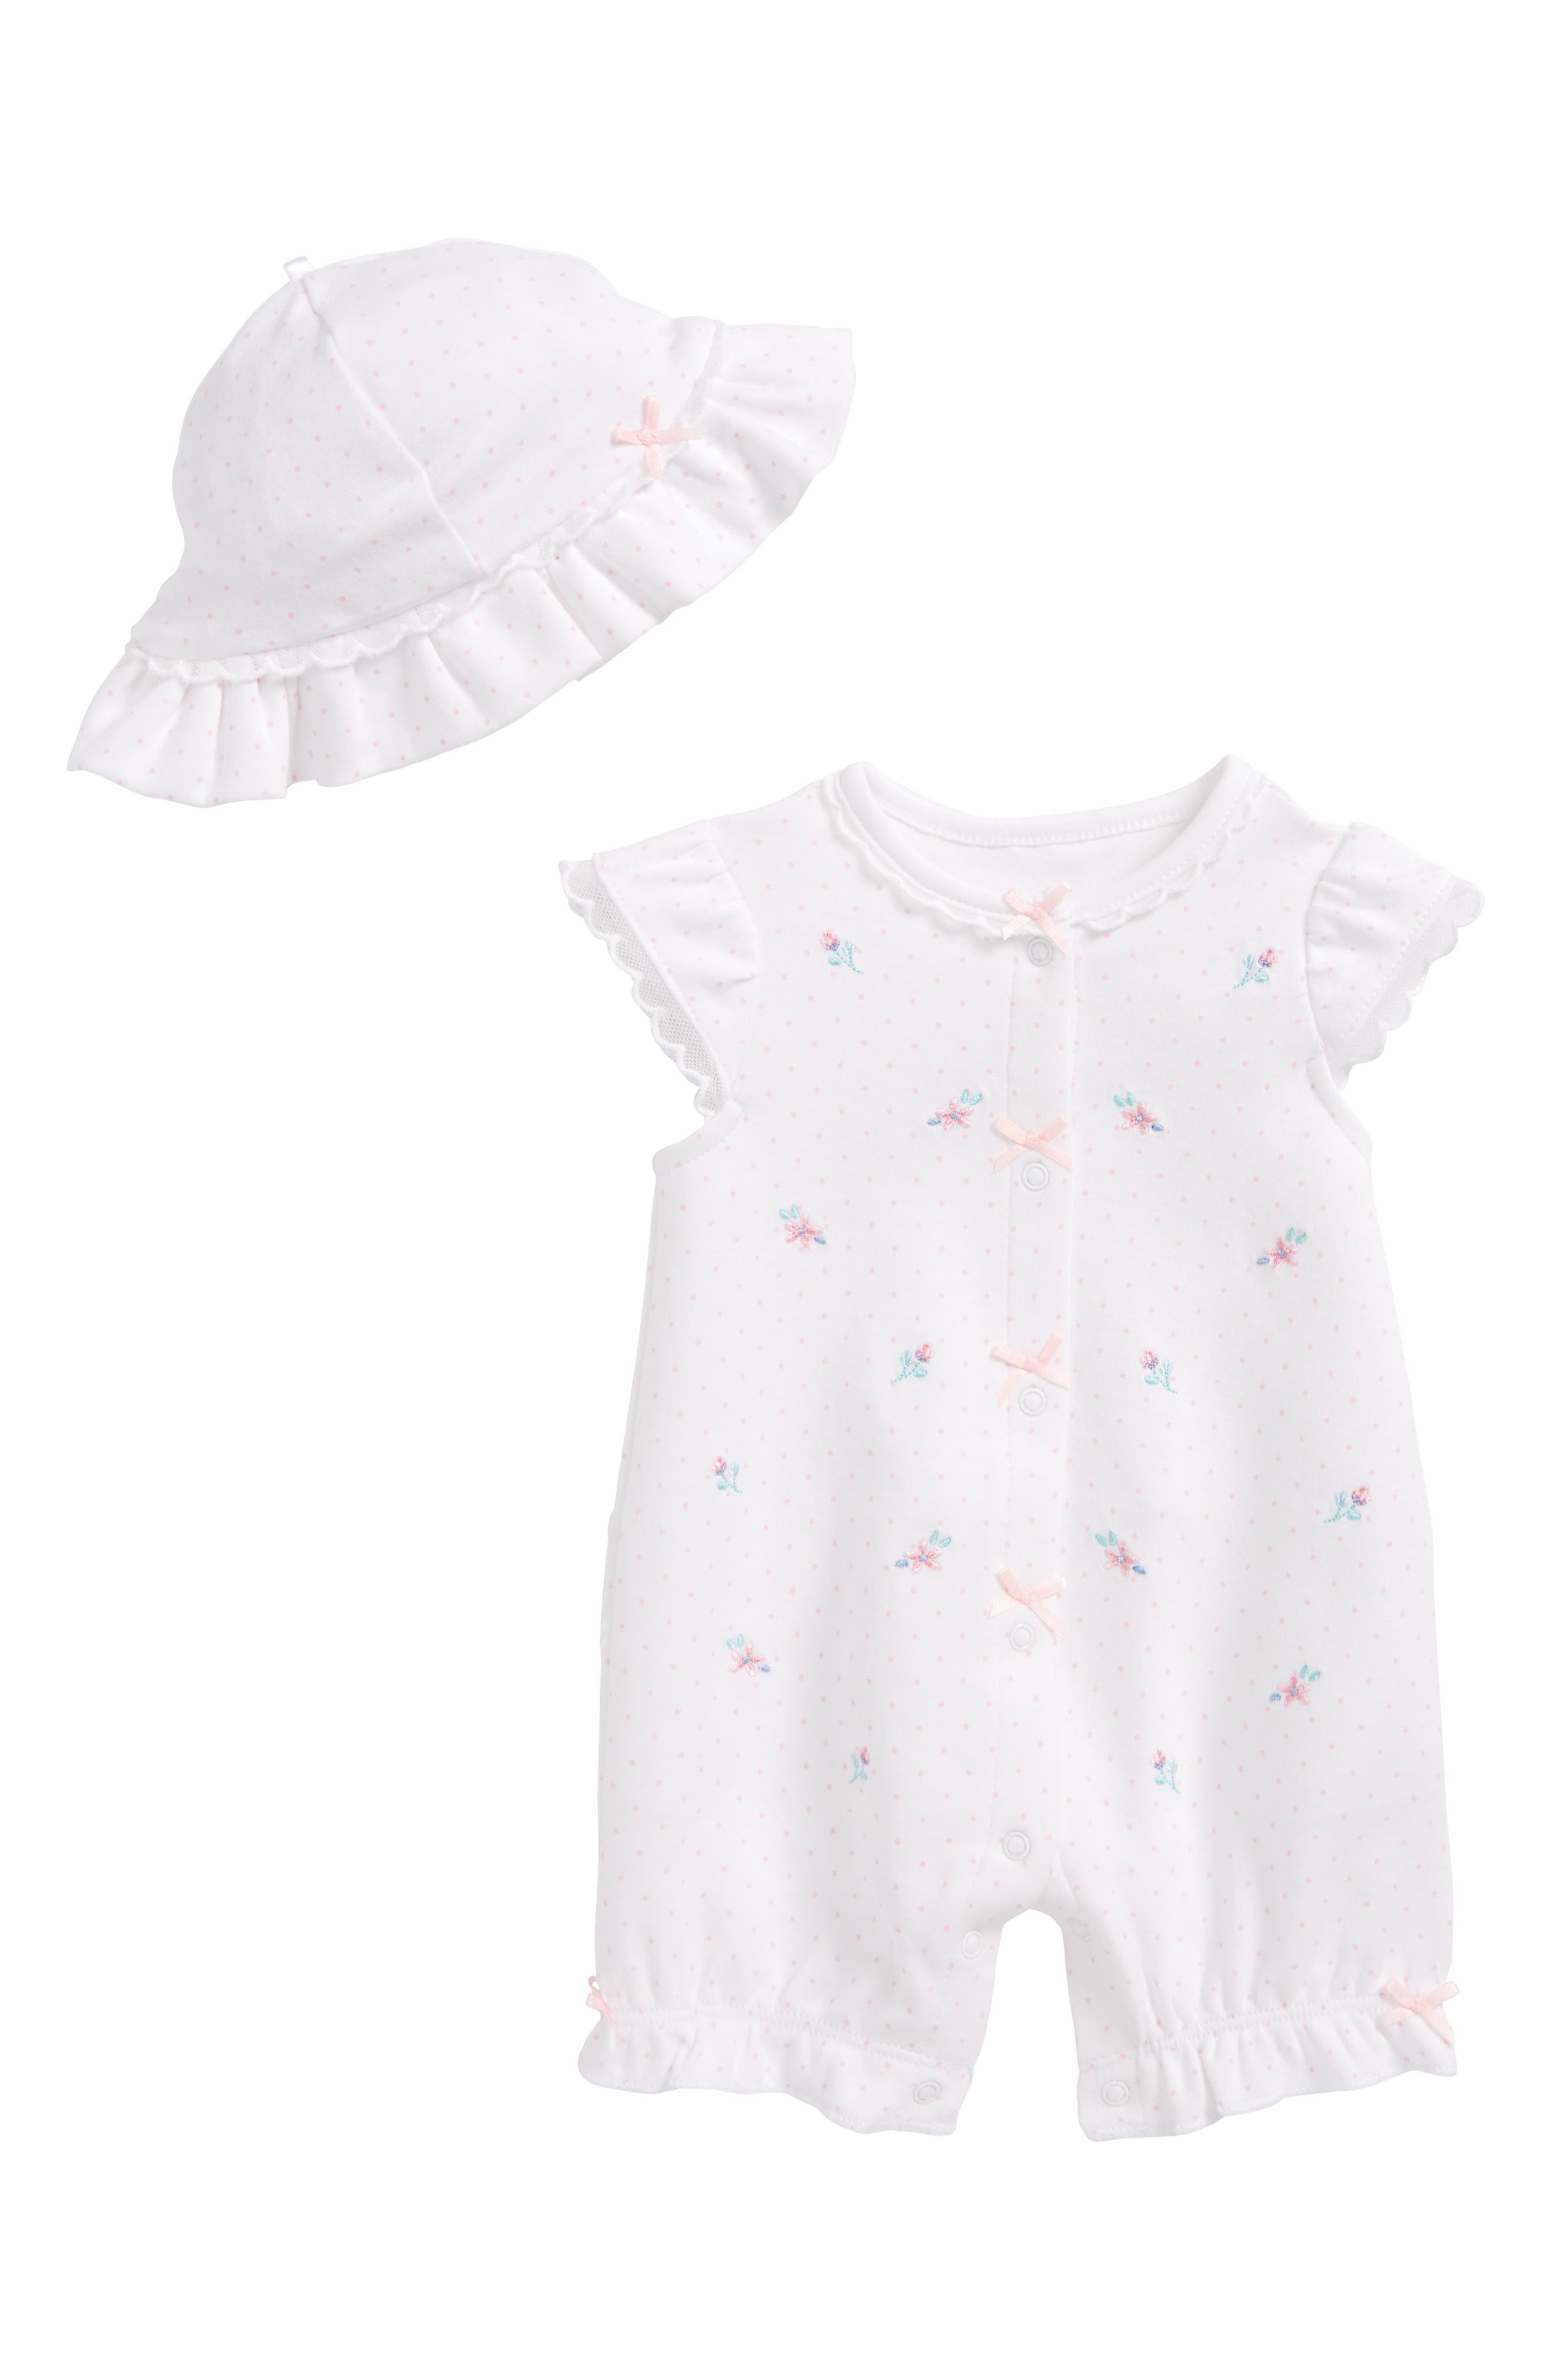 Whimsical Romper & Hat Set,                             Main thumbnail 1, color,                             118